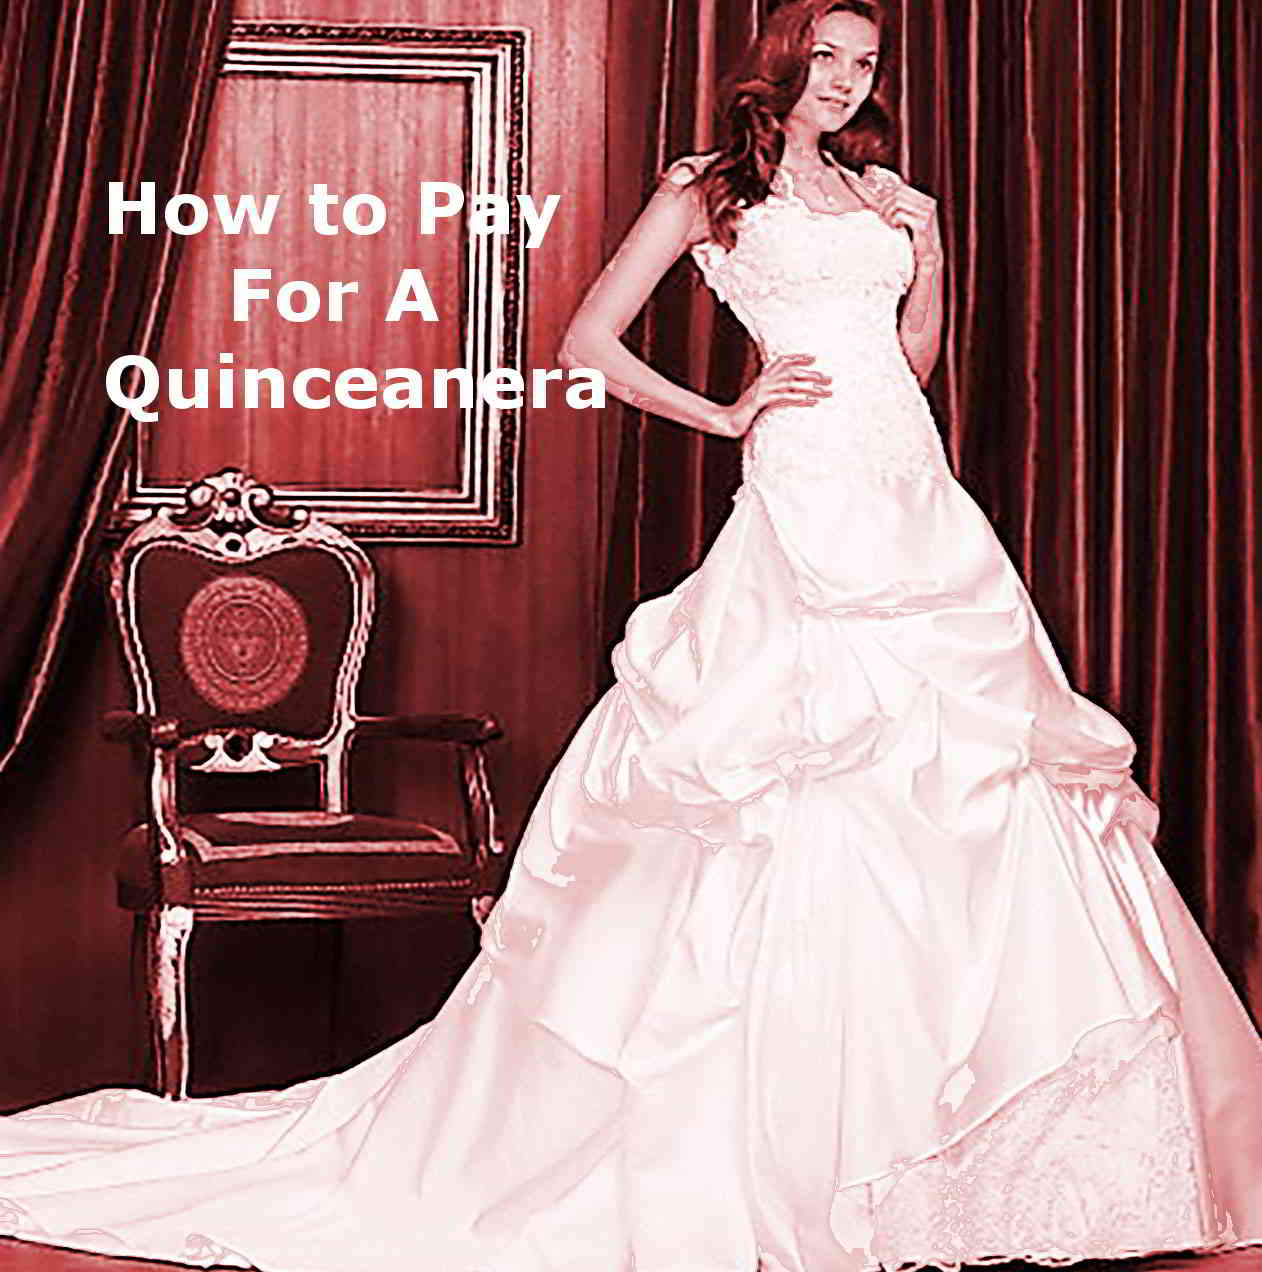 how to pay for a quinceanera